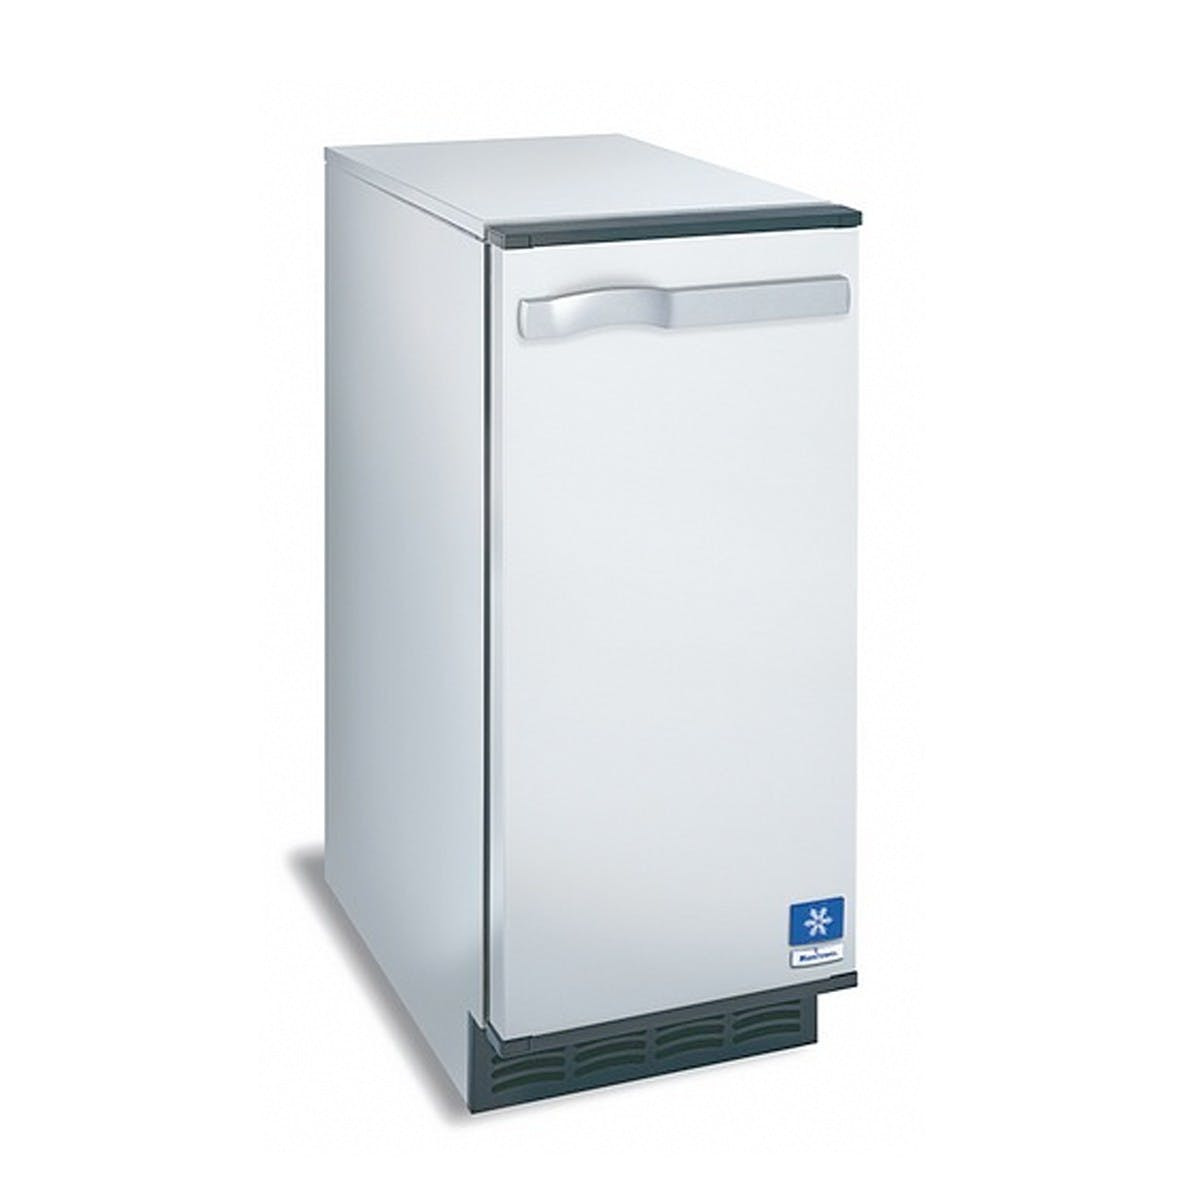 Manitowoc Ice SM-50A Undercounter Air Cooled Ice Cube Machine - 53 lb - sold by Mission Restaurant Supply